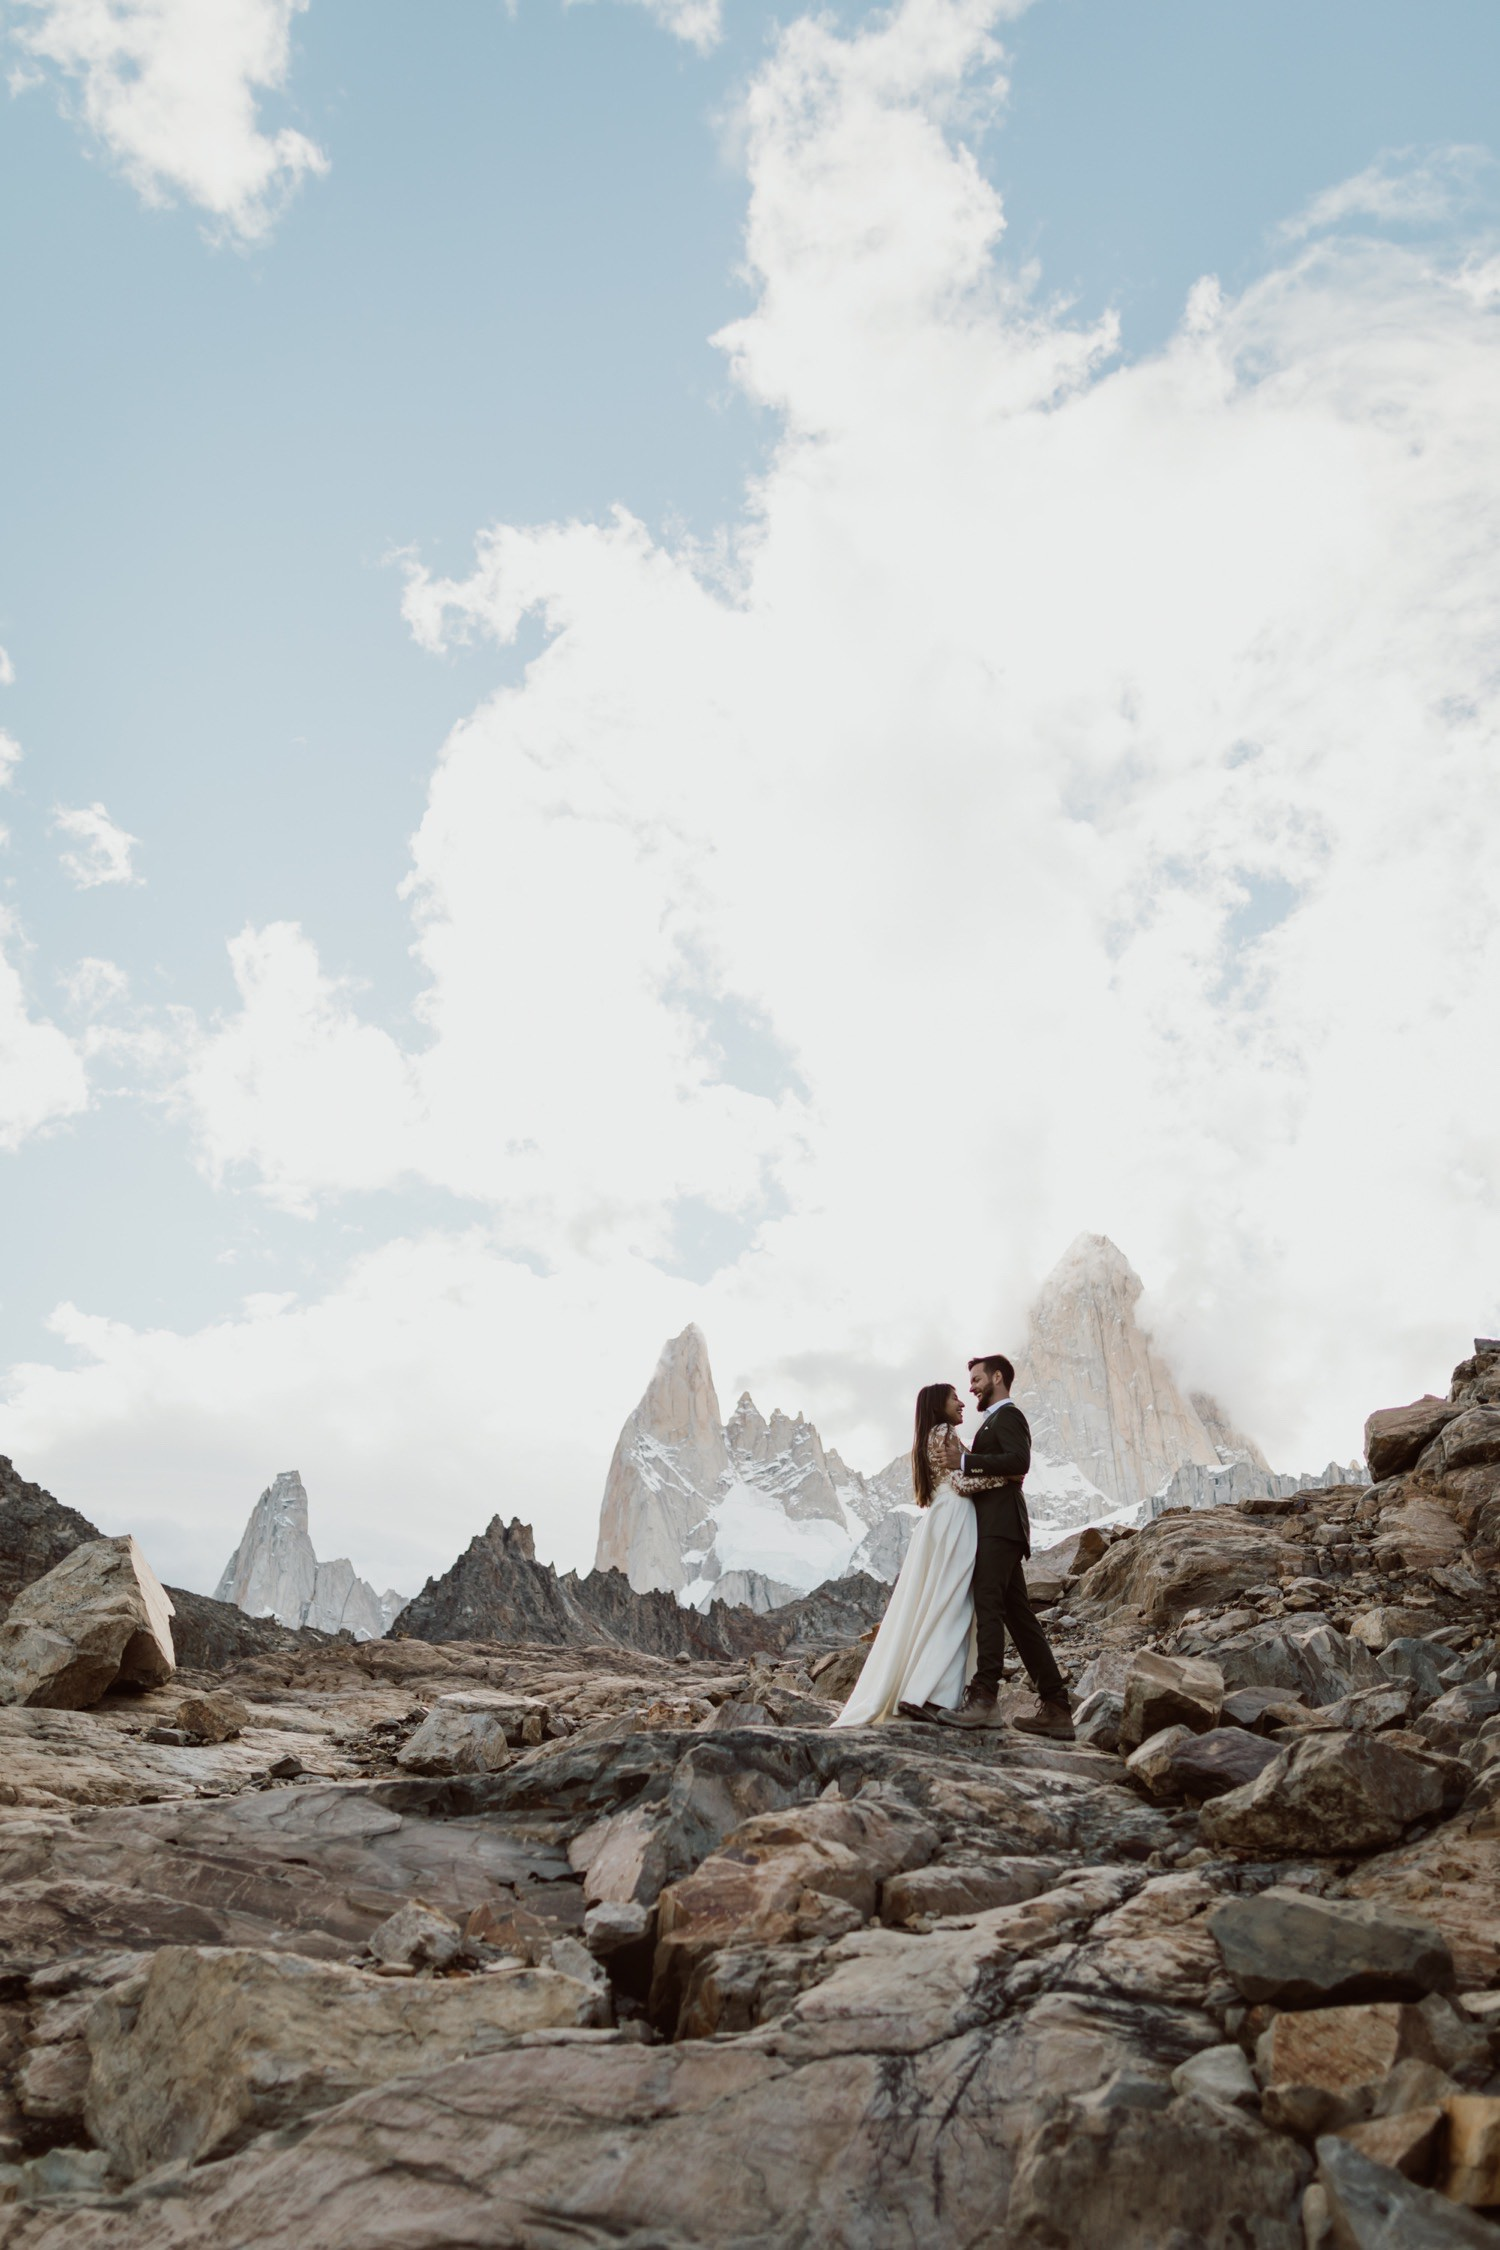 patagonia-argentina-adventure-wedding-session-18.jpg